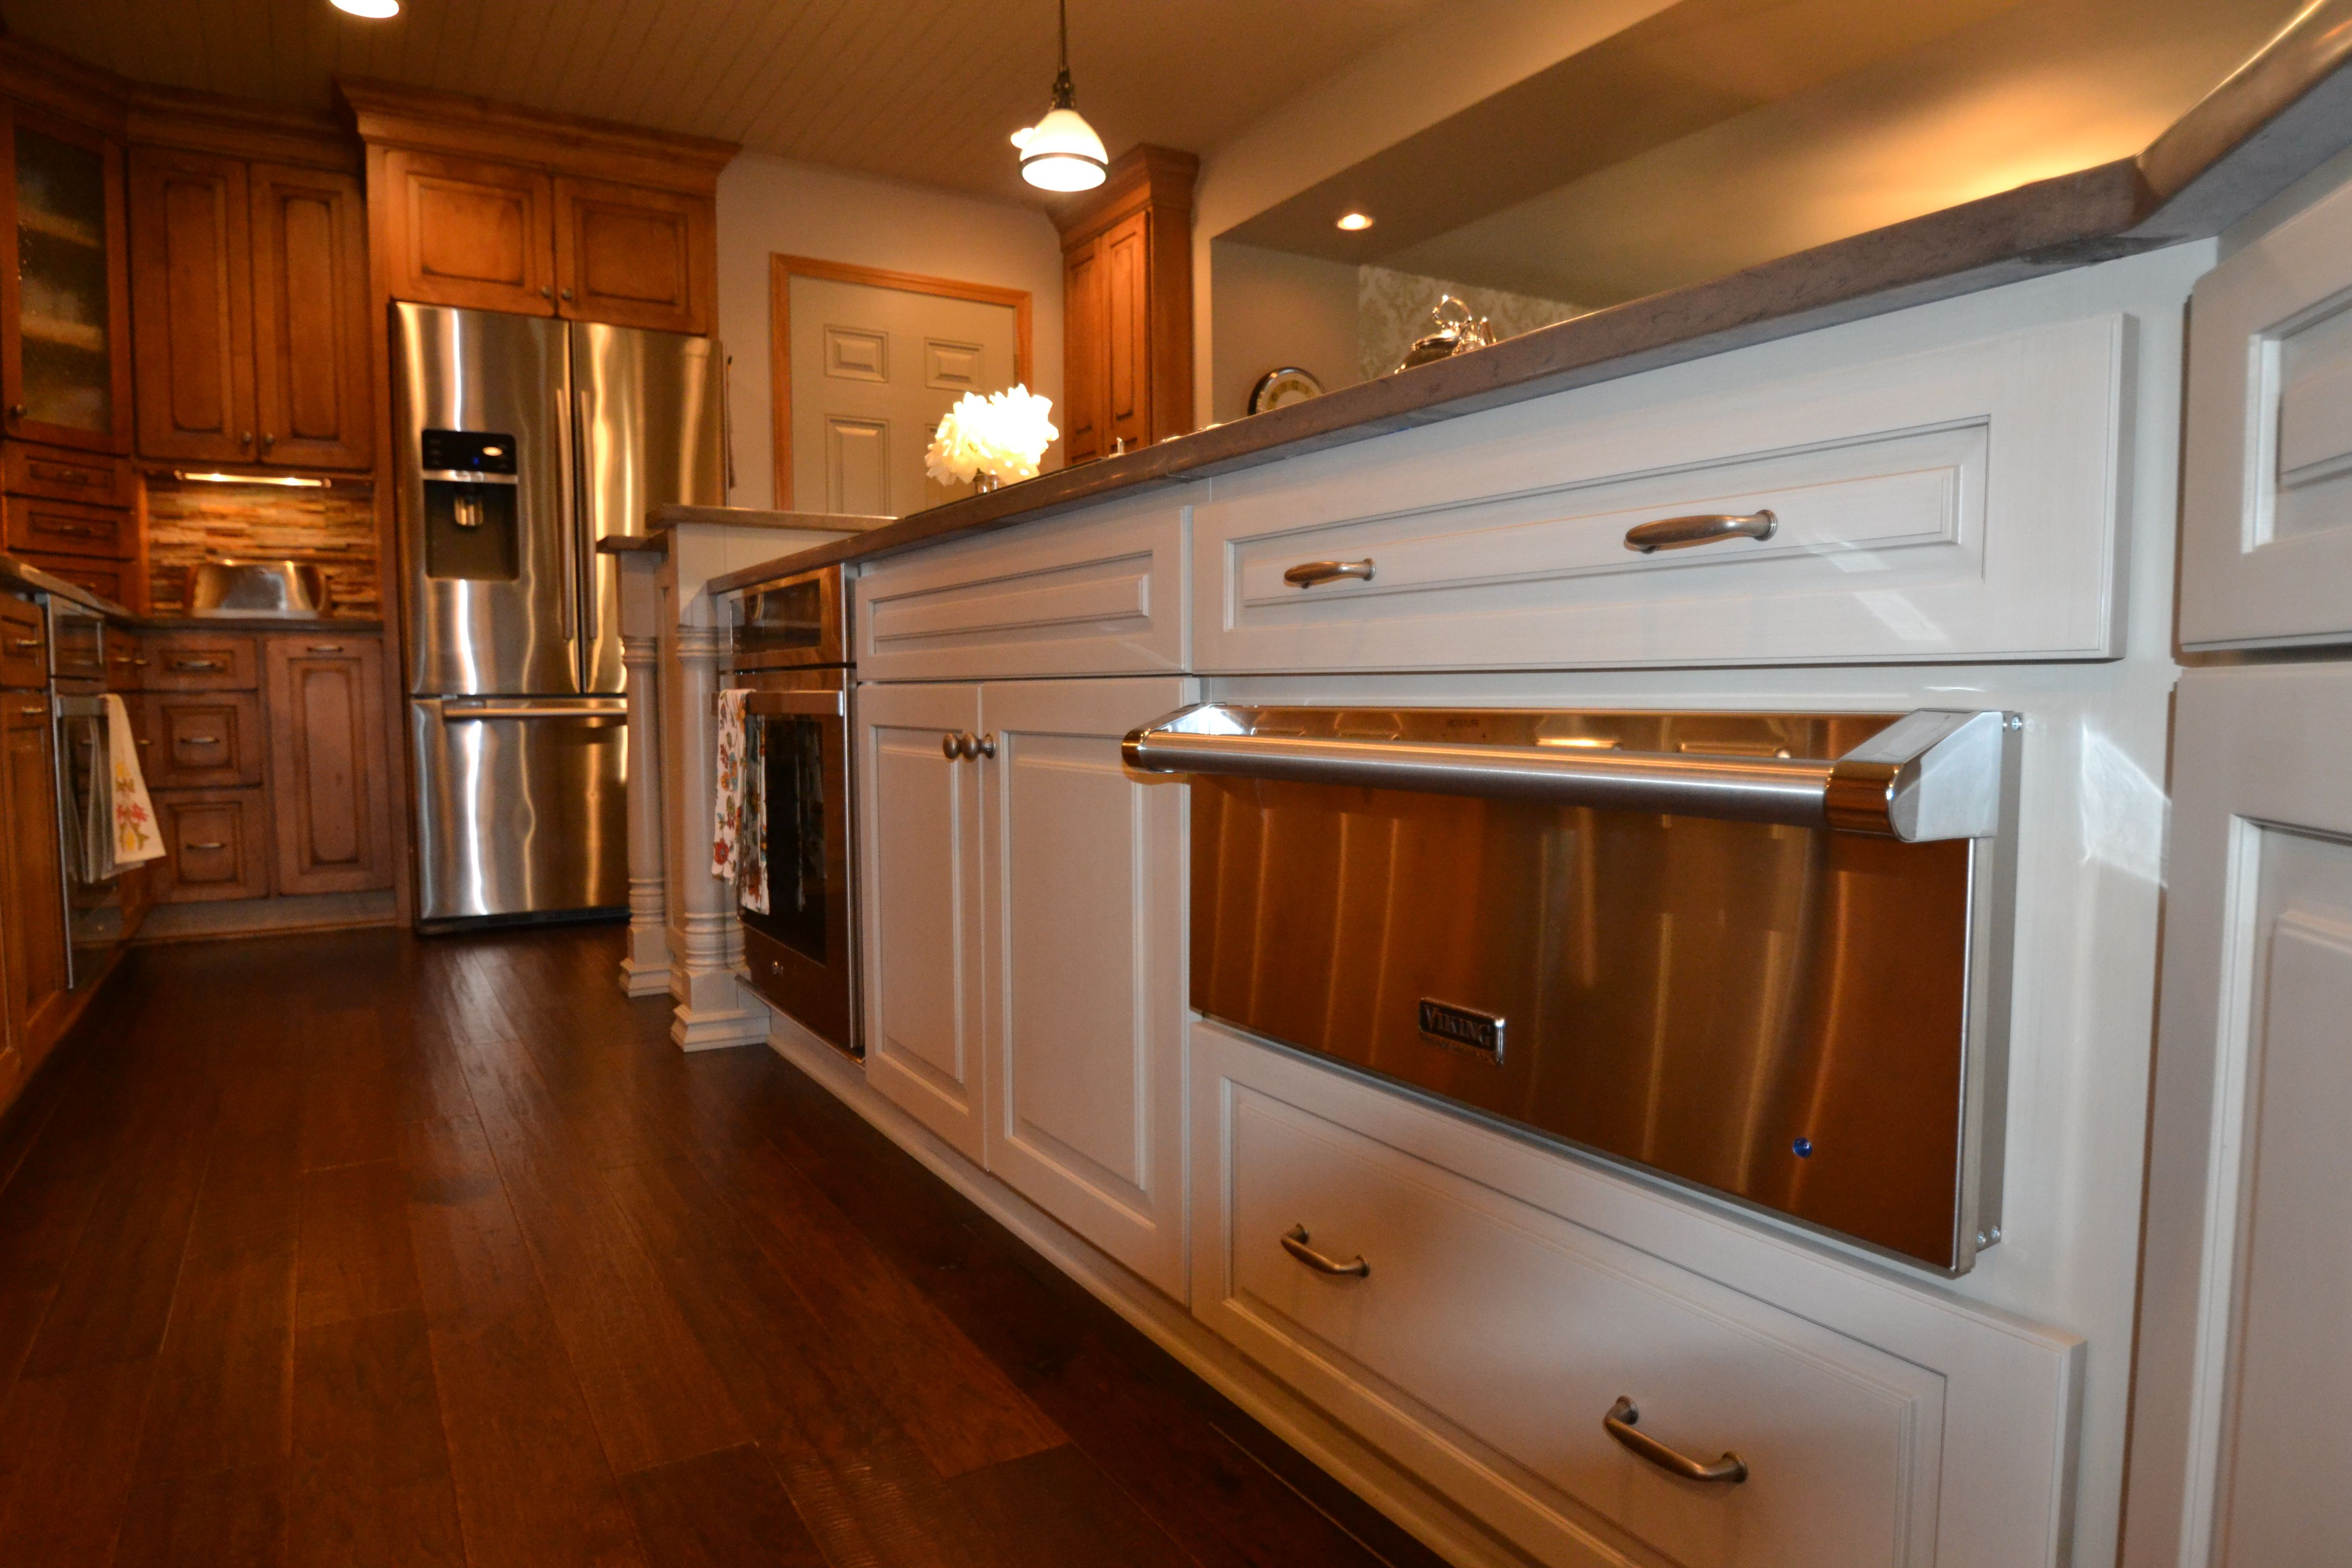 Westerville kitchen remodel featured two tones of Starmark Cabinetry ...